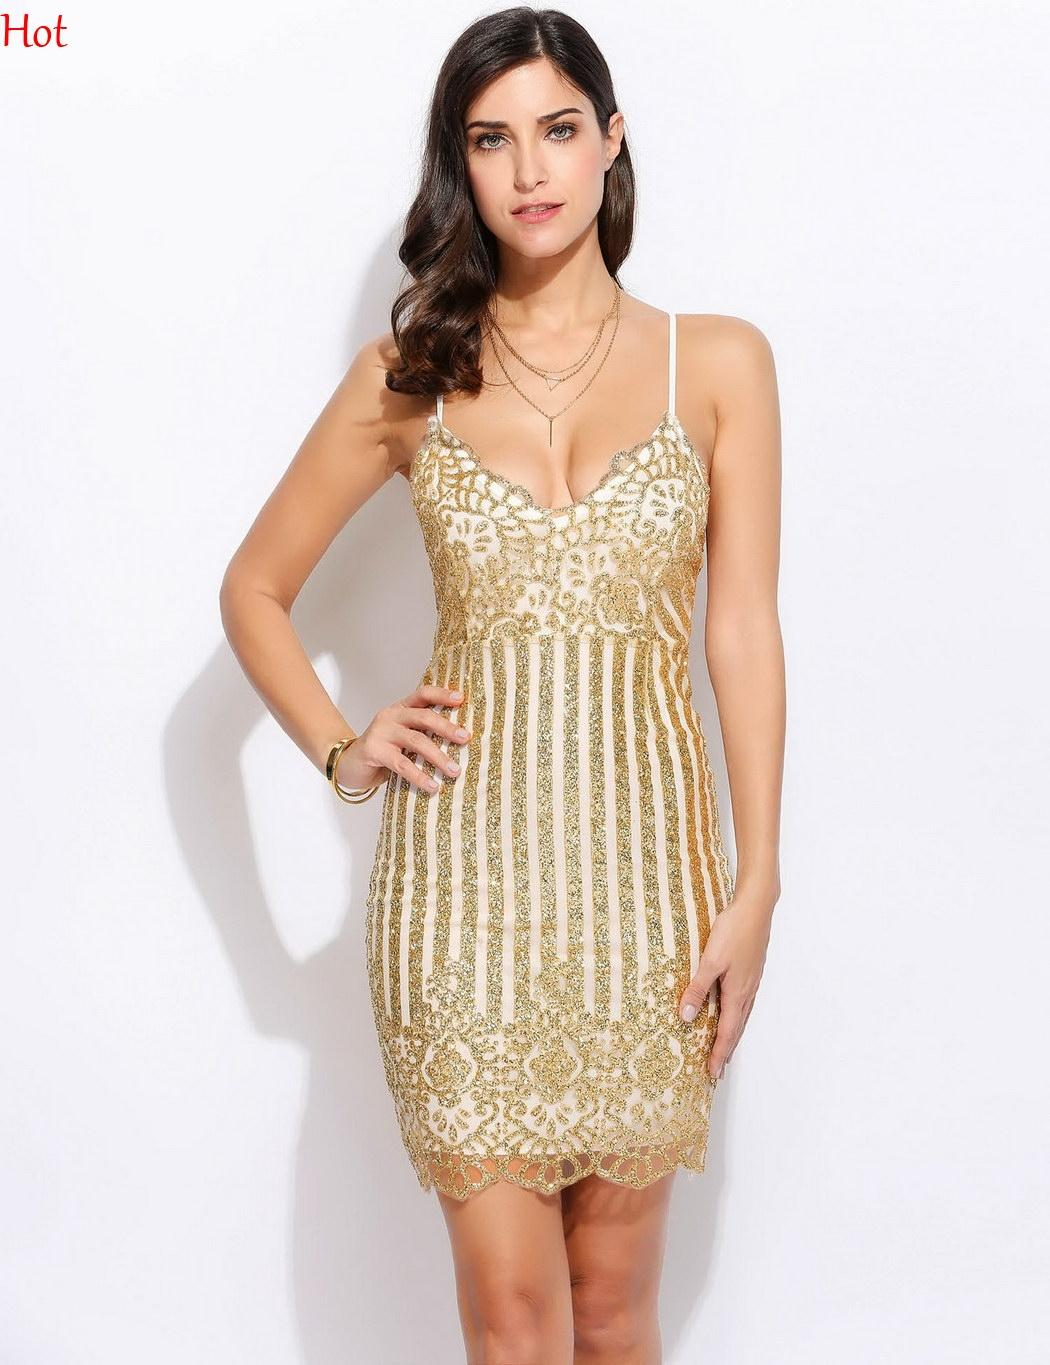 d10a084b 2019 Gold Sexy Spaghetti Strap Dresses Women Sequins V Neck Backless  Bodycon Dress Ladies Clothing Party Club Pencil Mini Dress Sale SVH032482  From U_king, ...